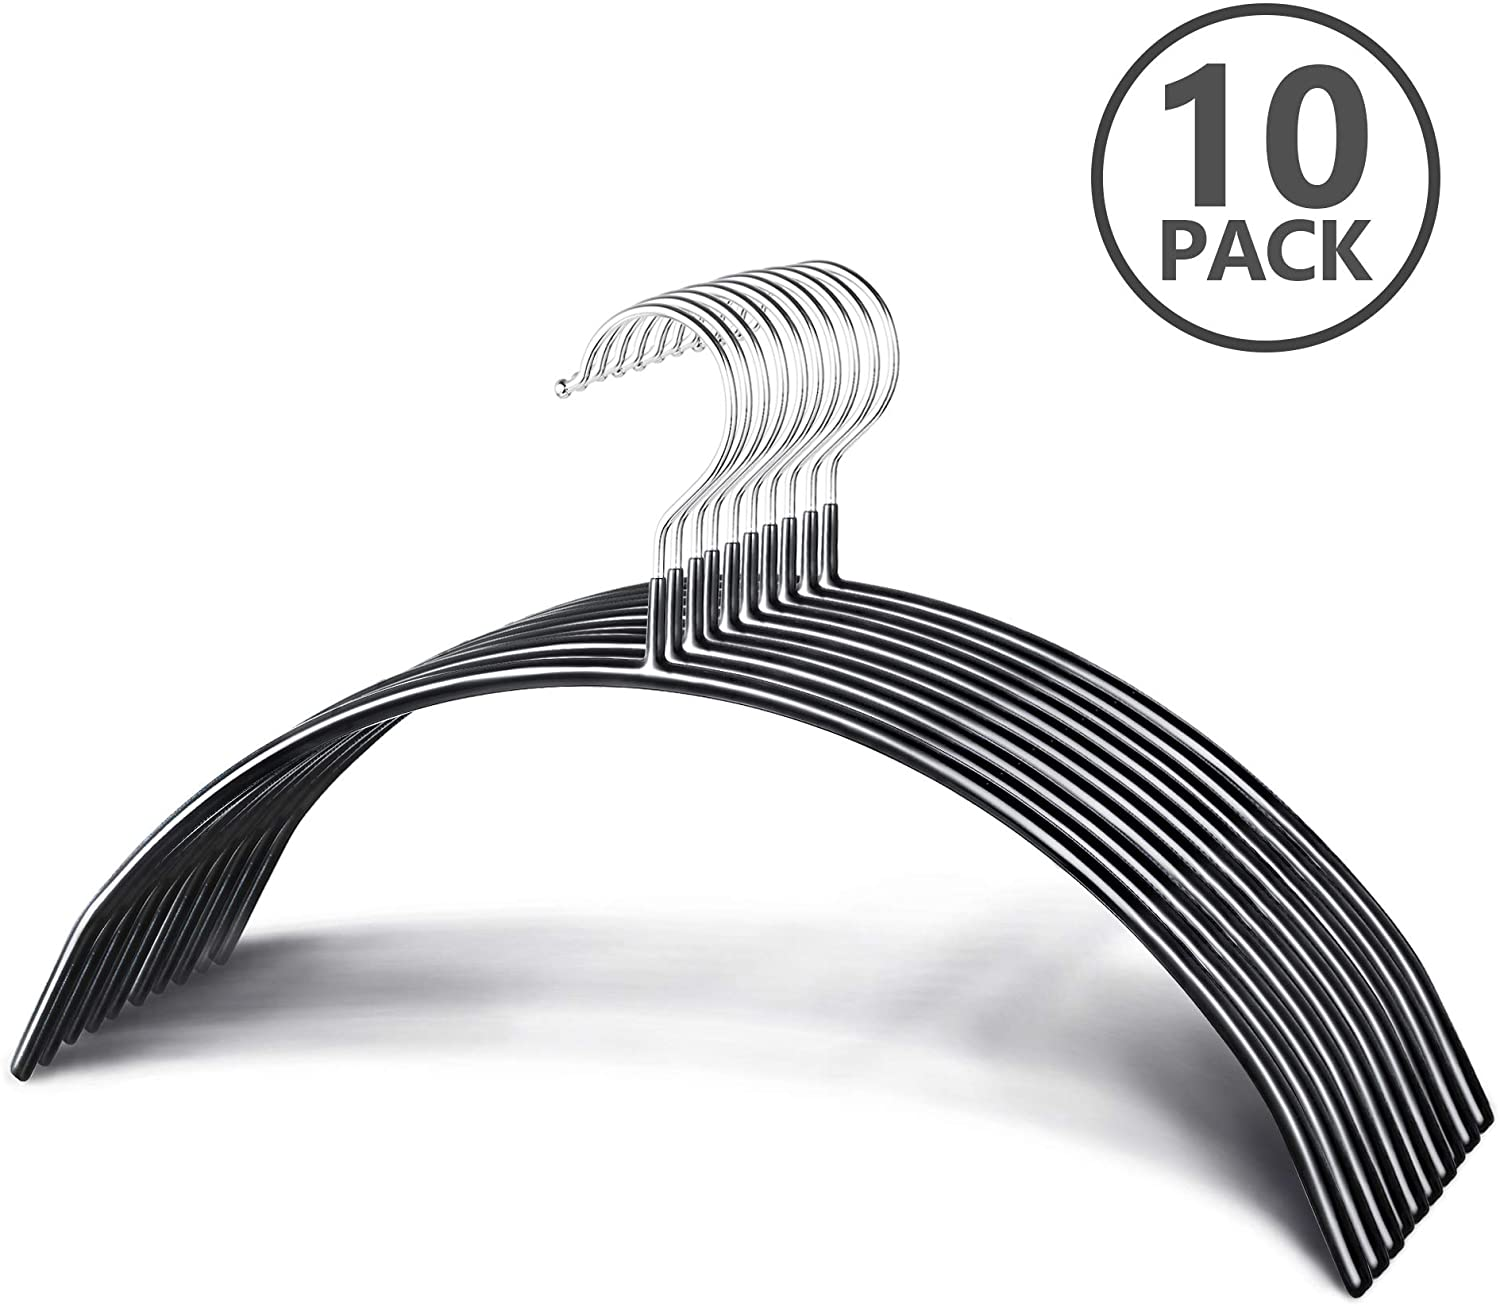 Zoe Deco Slip Reducing Contour Clothes Hangers with Grippy Coating, Sleek and Slim Arc-Shape Hangers, Bump Free Hanger Solution (Black, 16.5